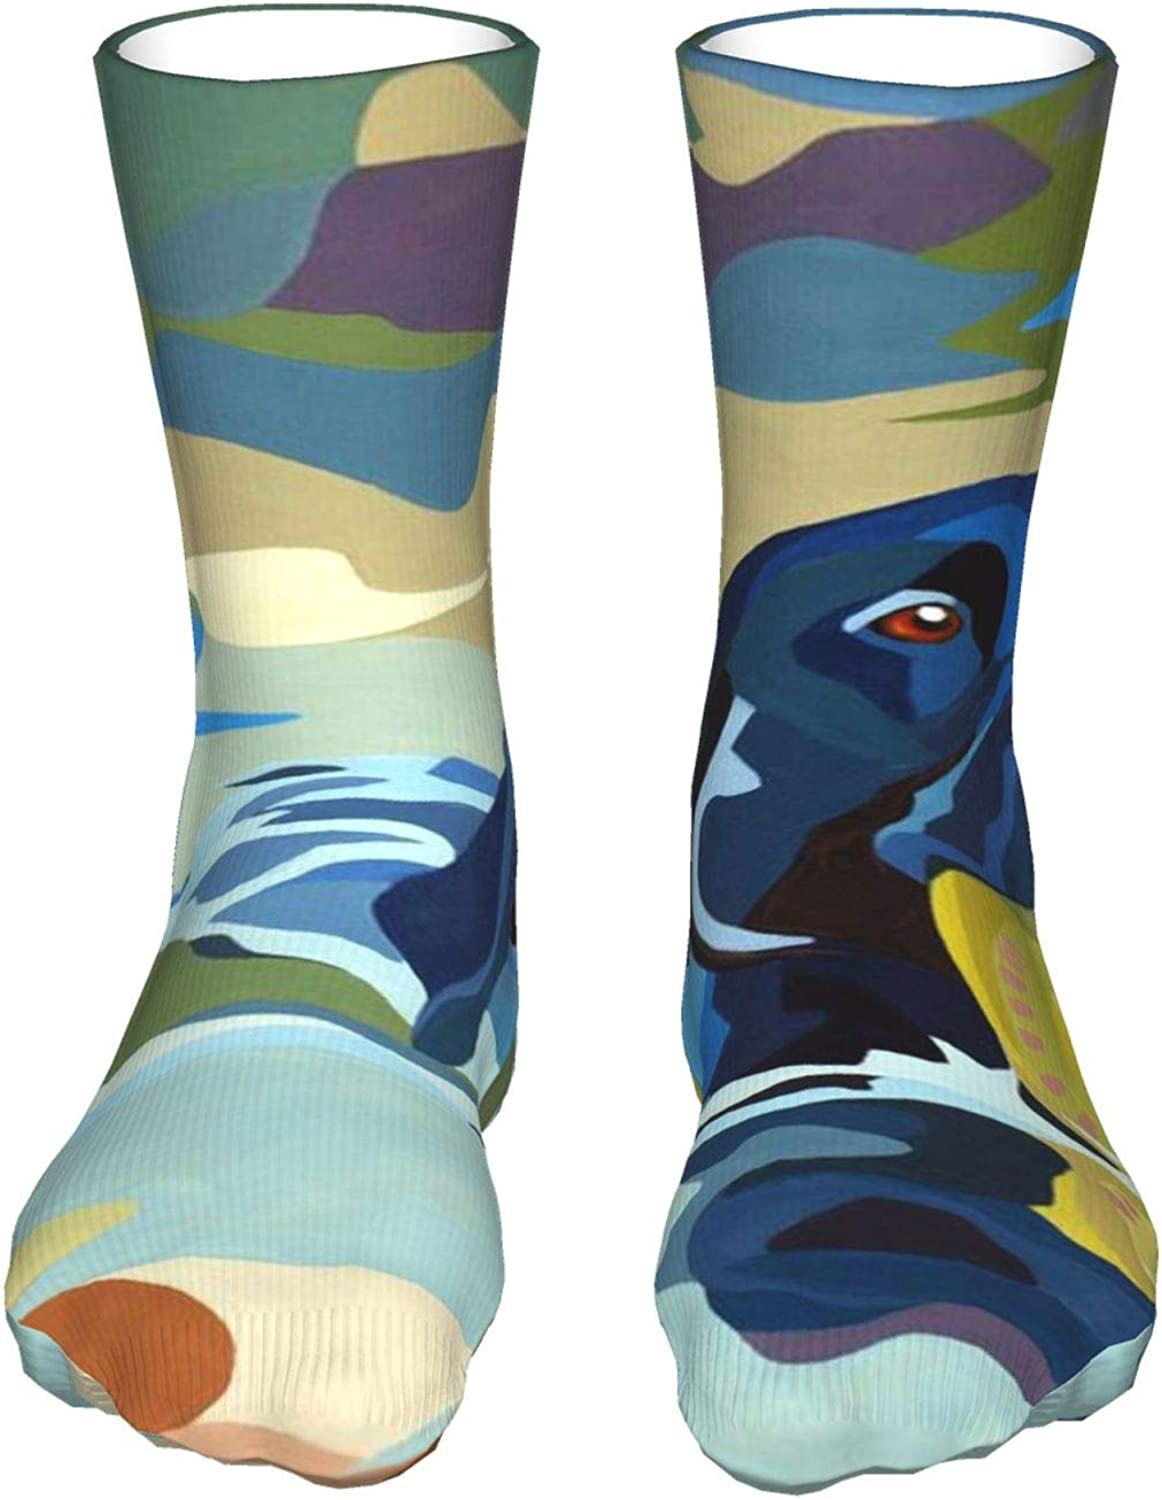 Abstract Dogteen'S Sockings Boy'S Soft Casual Socks New 5 ☆ very popular arrival Breathabl S